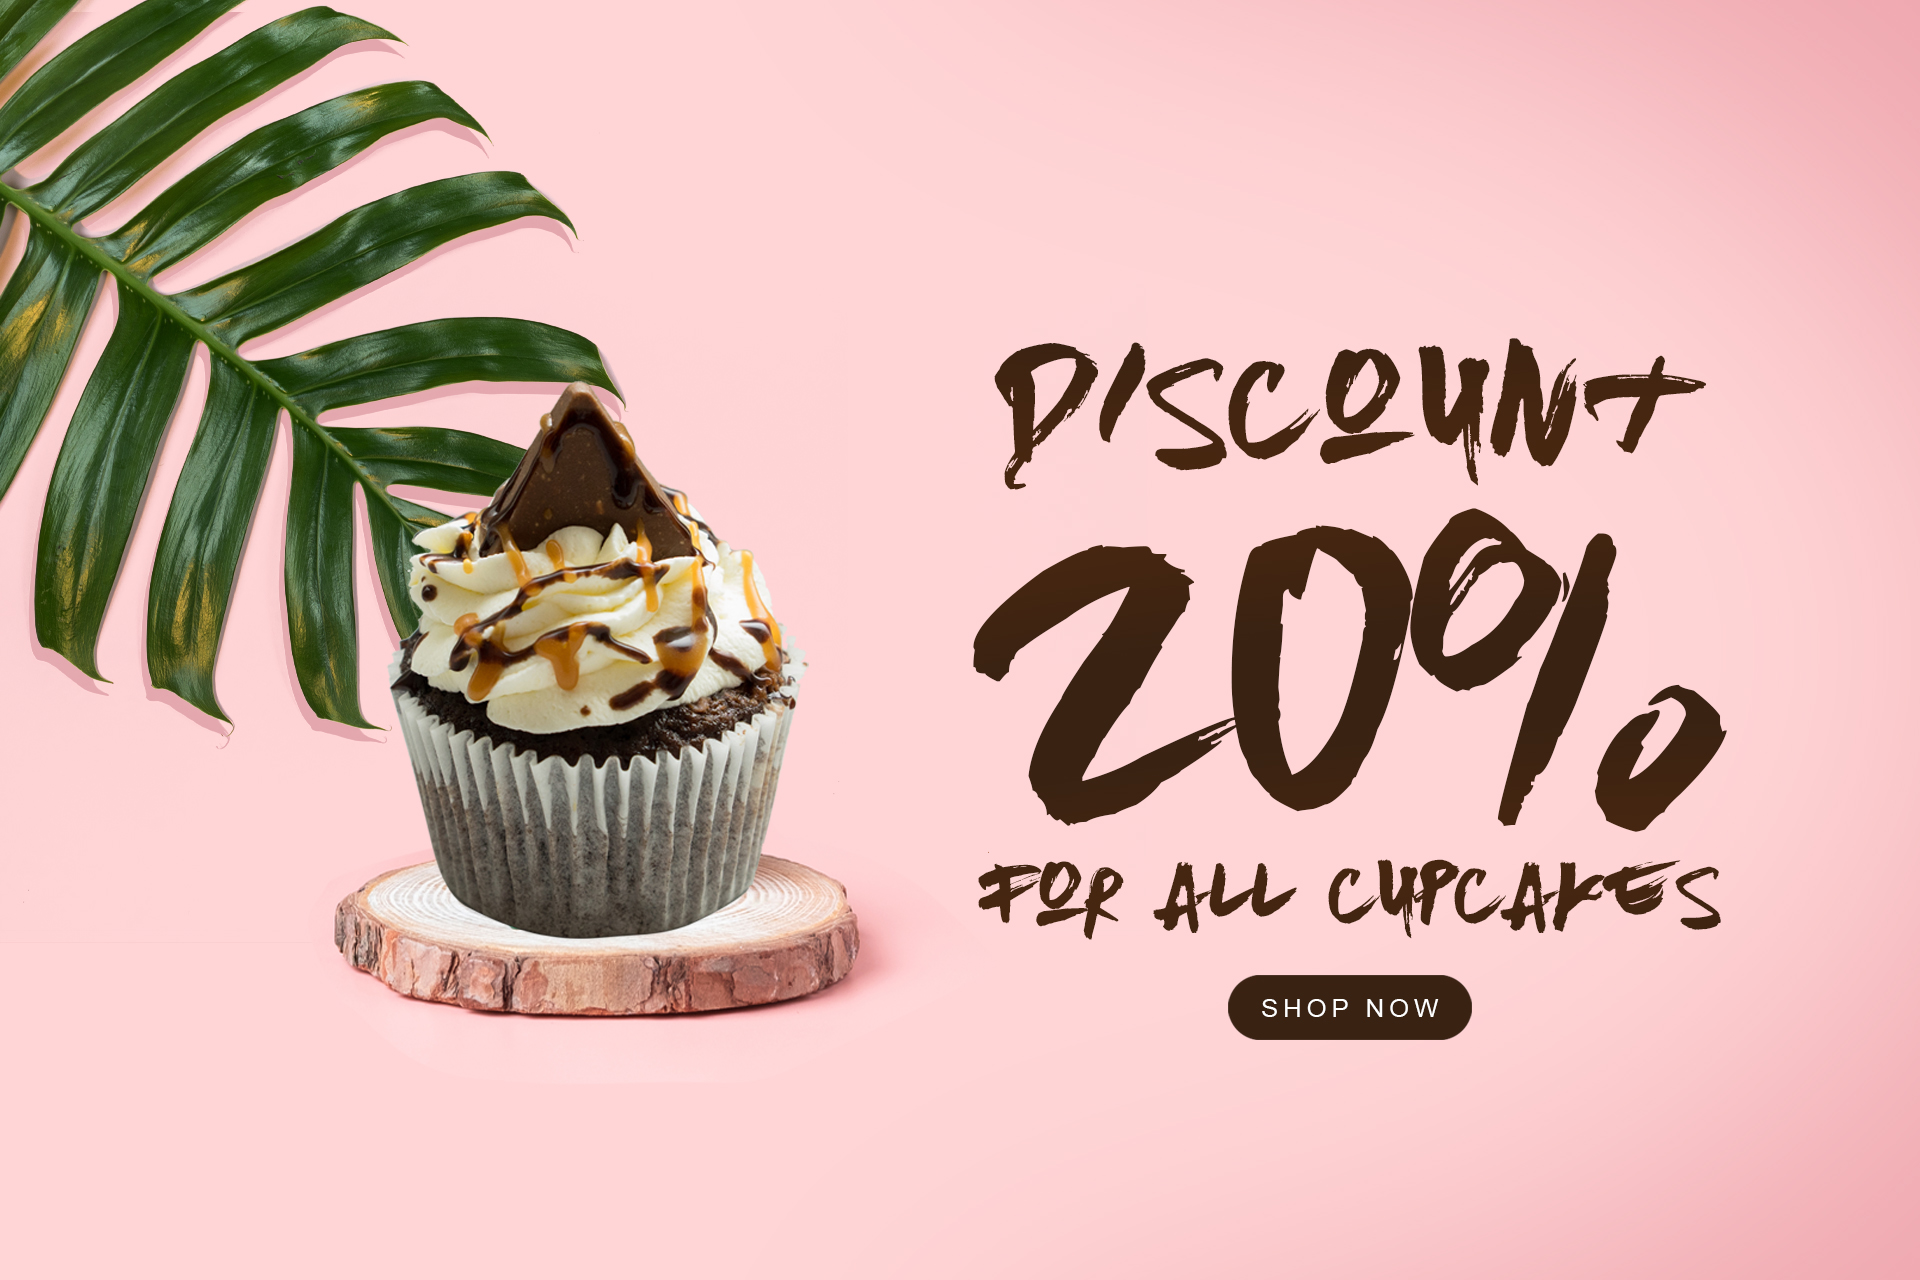 20% OFF ALL CUPCAKES